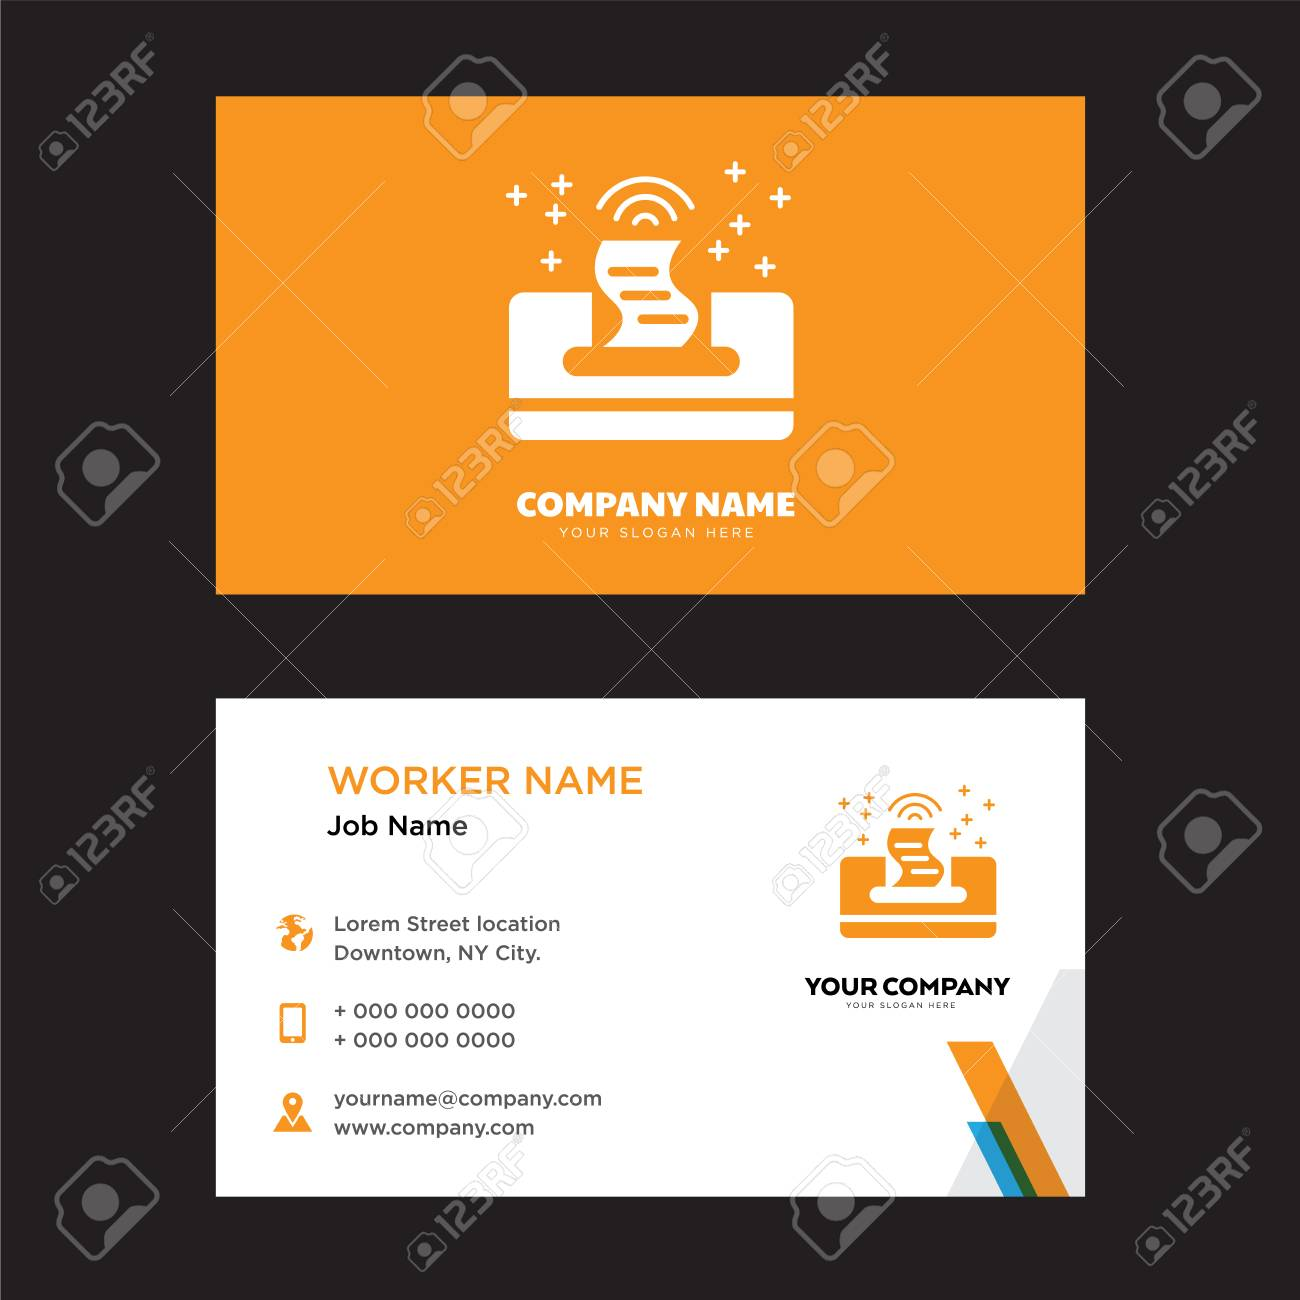 Printer business card design template visiting for your company printer business card design template visiting for your company modern horizontal identity card vector cheaphphosting Images